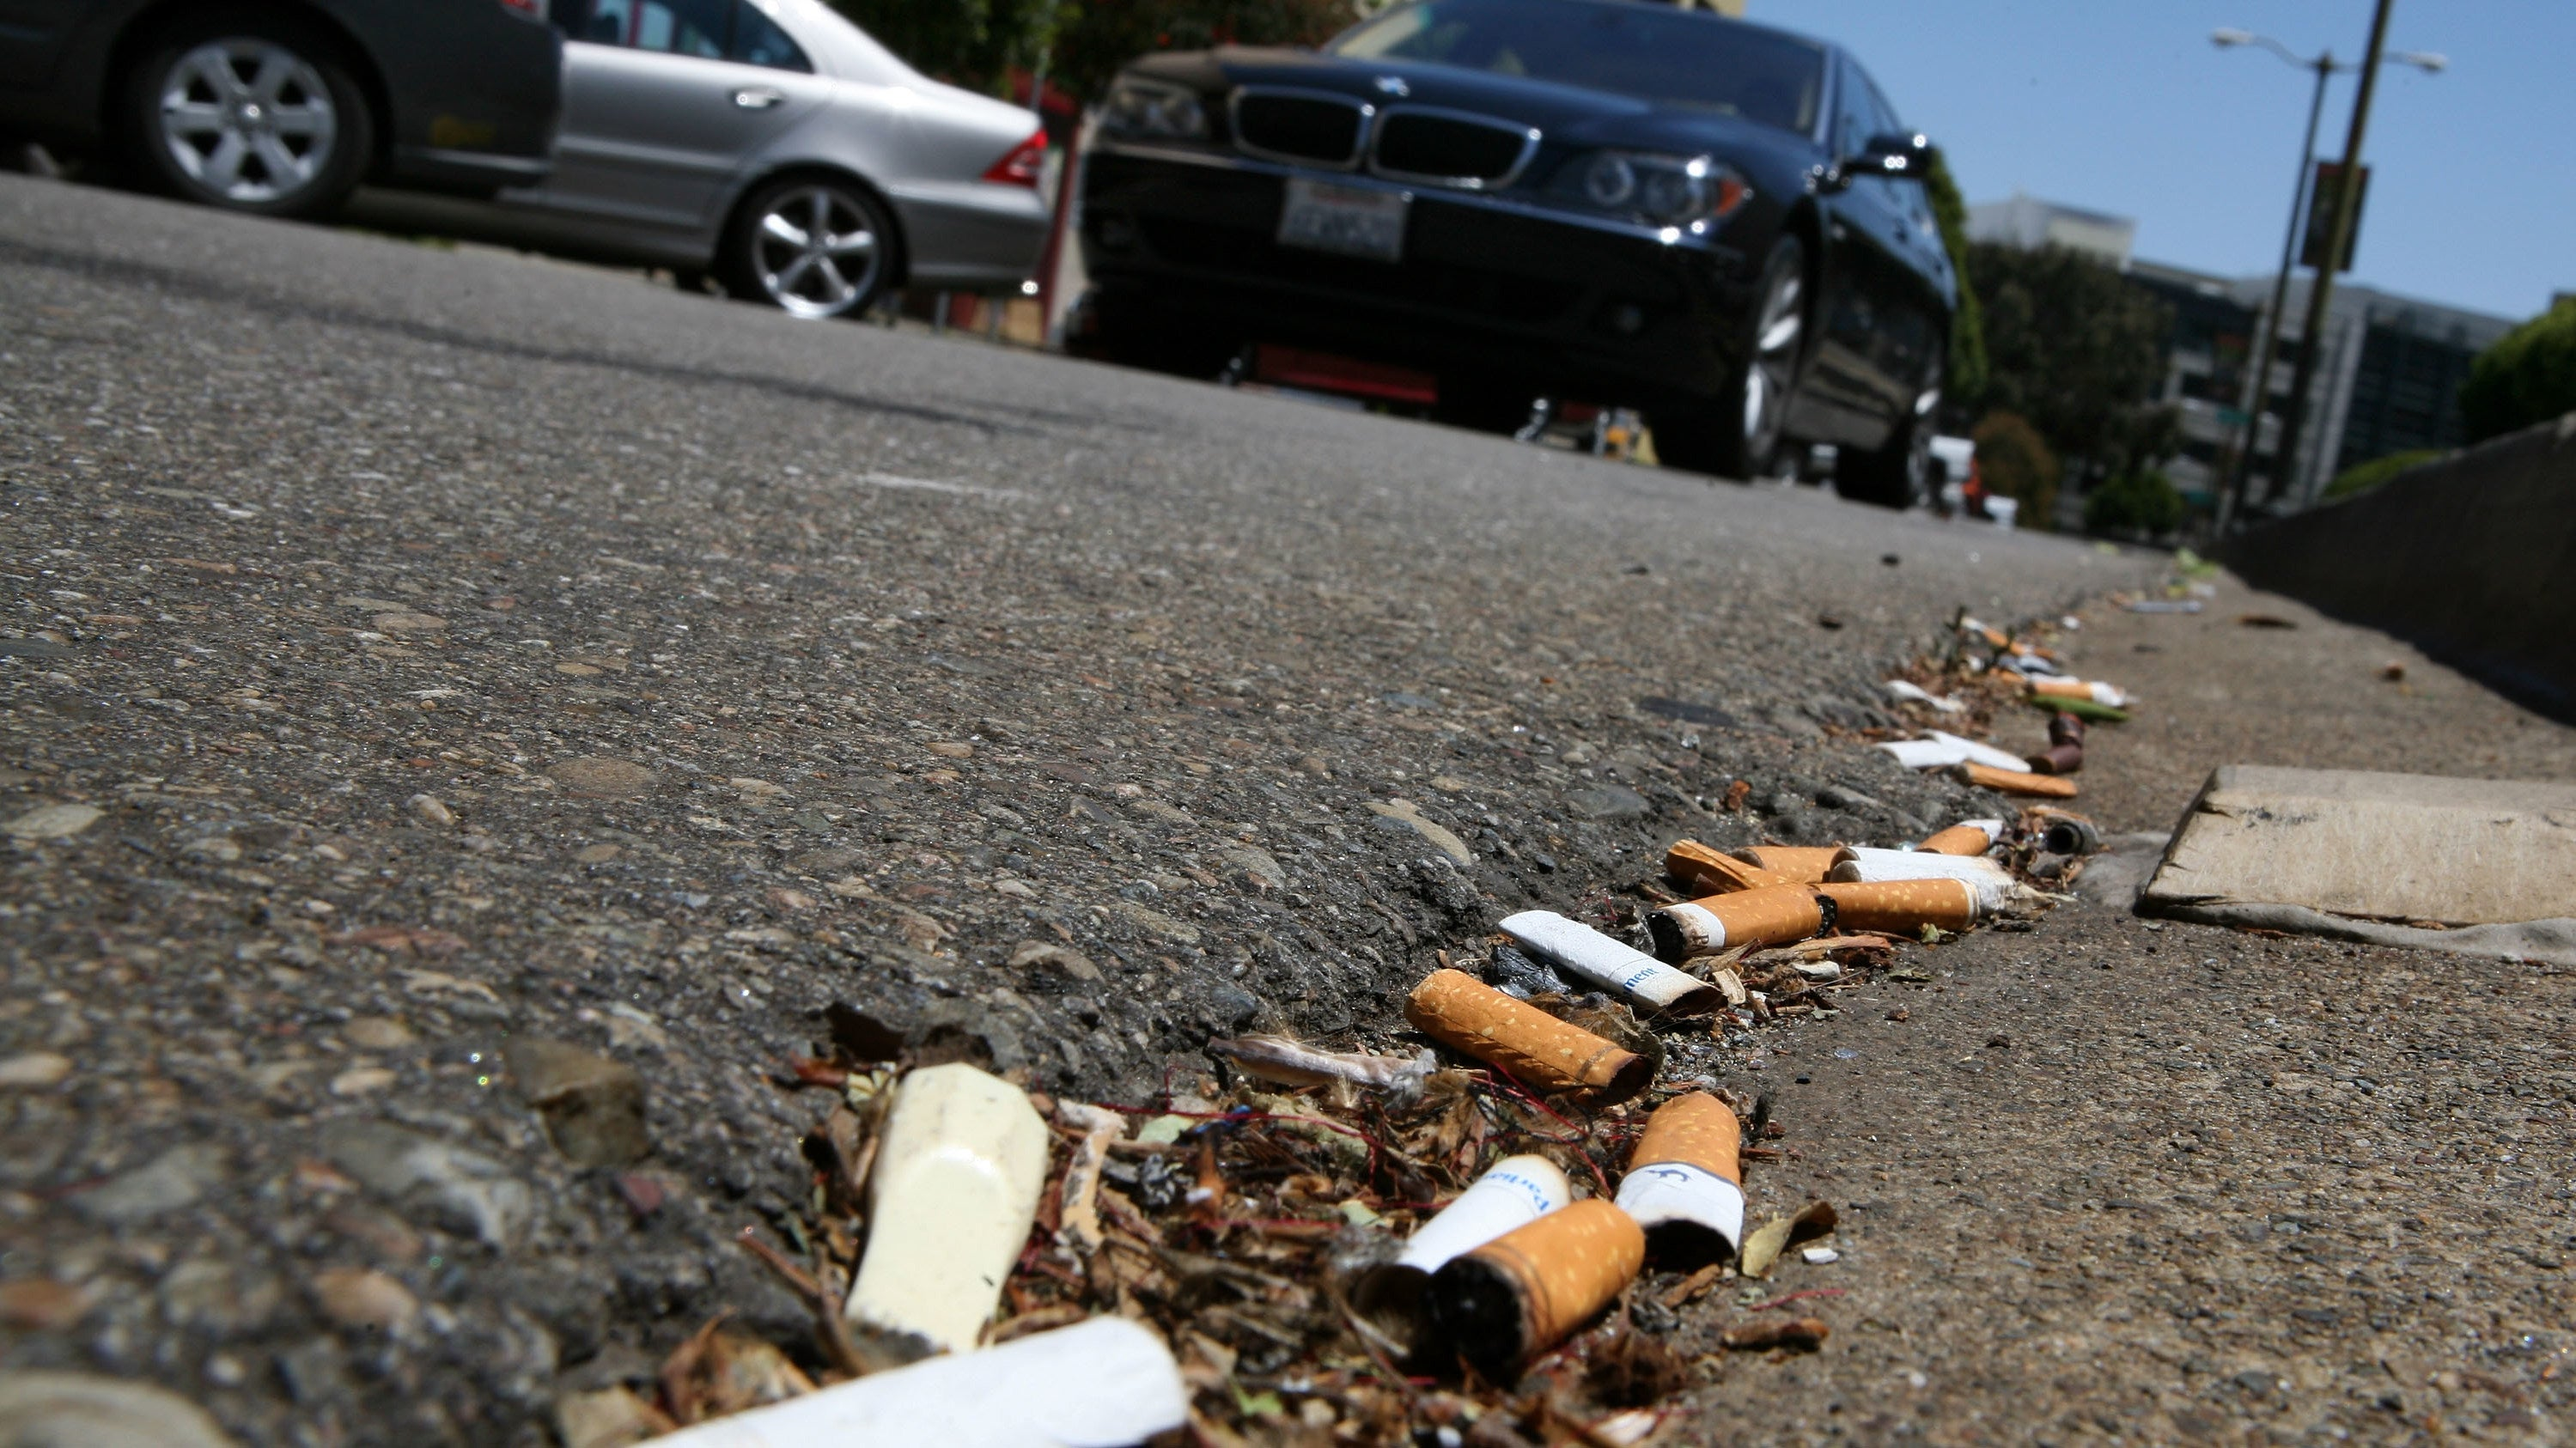 Filtered Cigarettes Are One Of The Worst Types Of Pollution And We Should Ban Them, Experts Argue